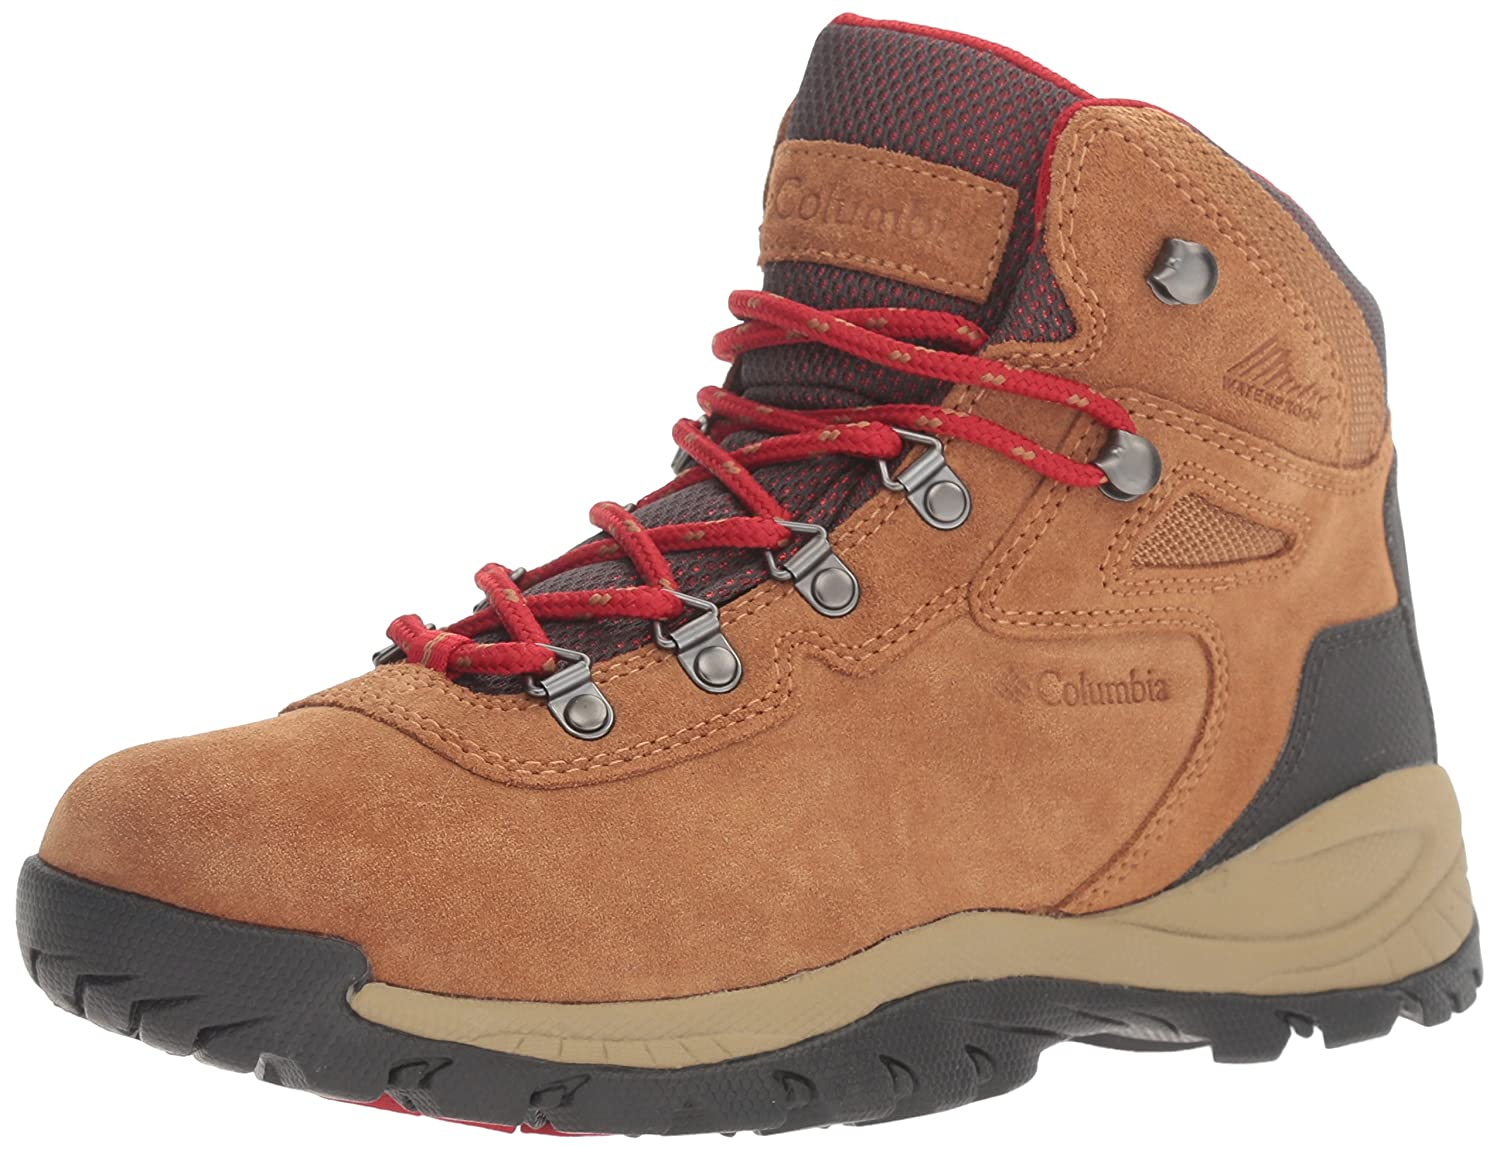 Columbia Women's Newton Ridge Plus Waterproof Amped Hiking Boot B01HEH2Y1E 6.5 B(M) US|Elk, Mountain Red